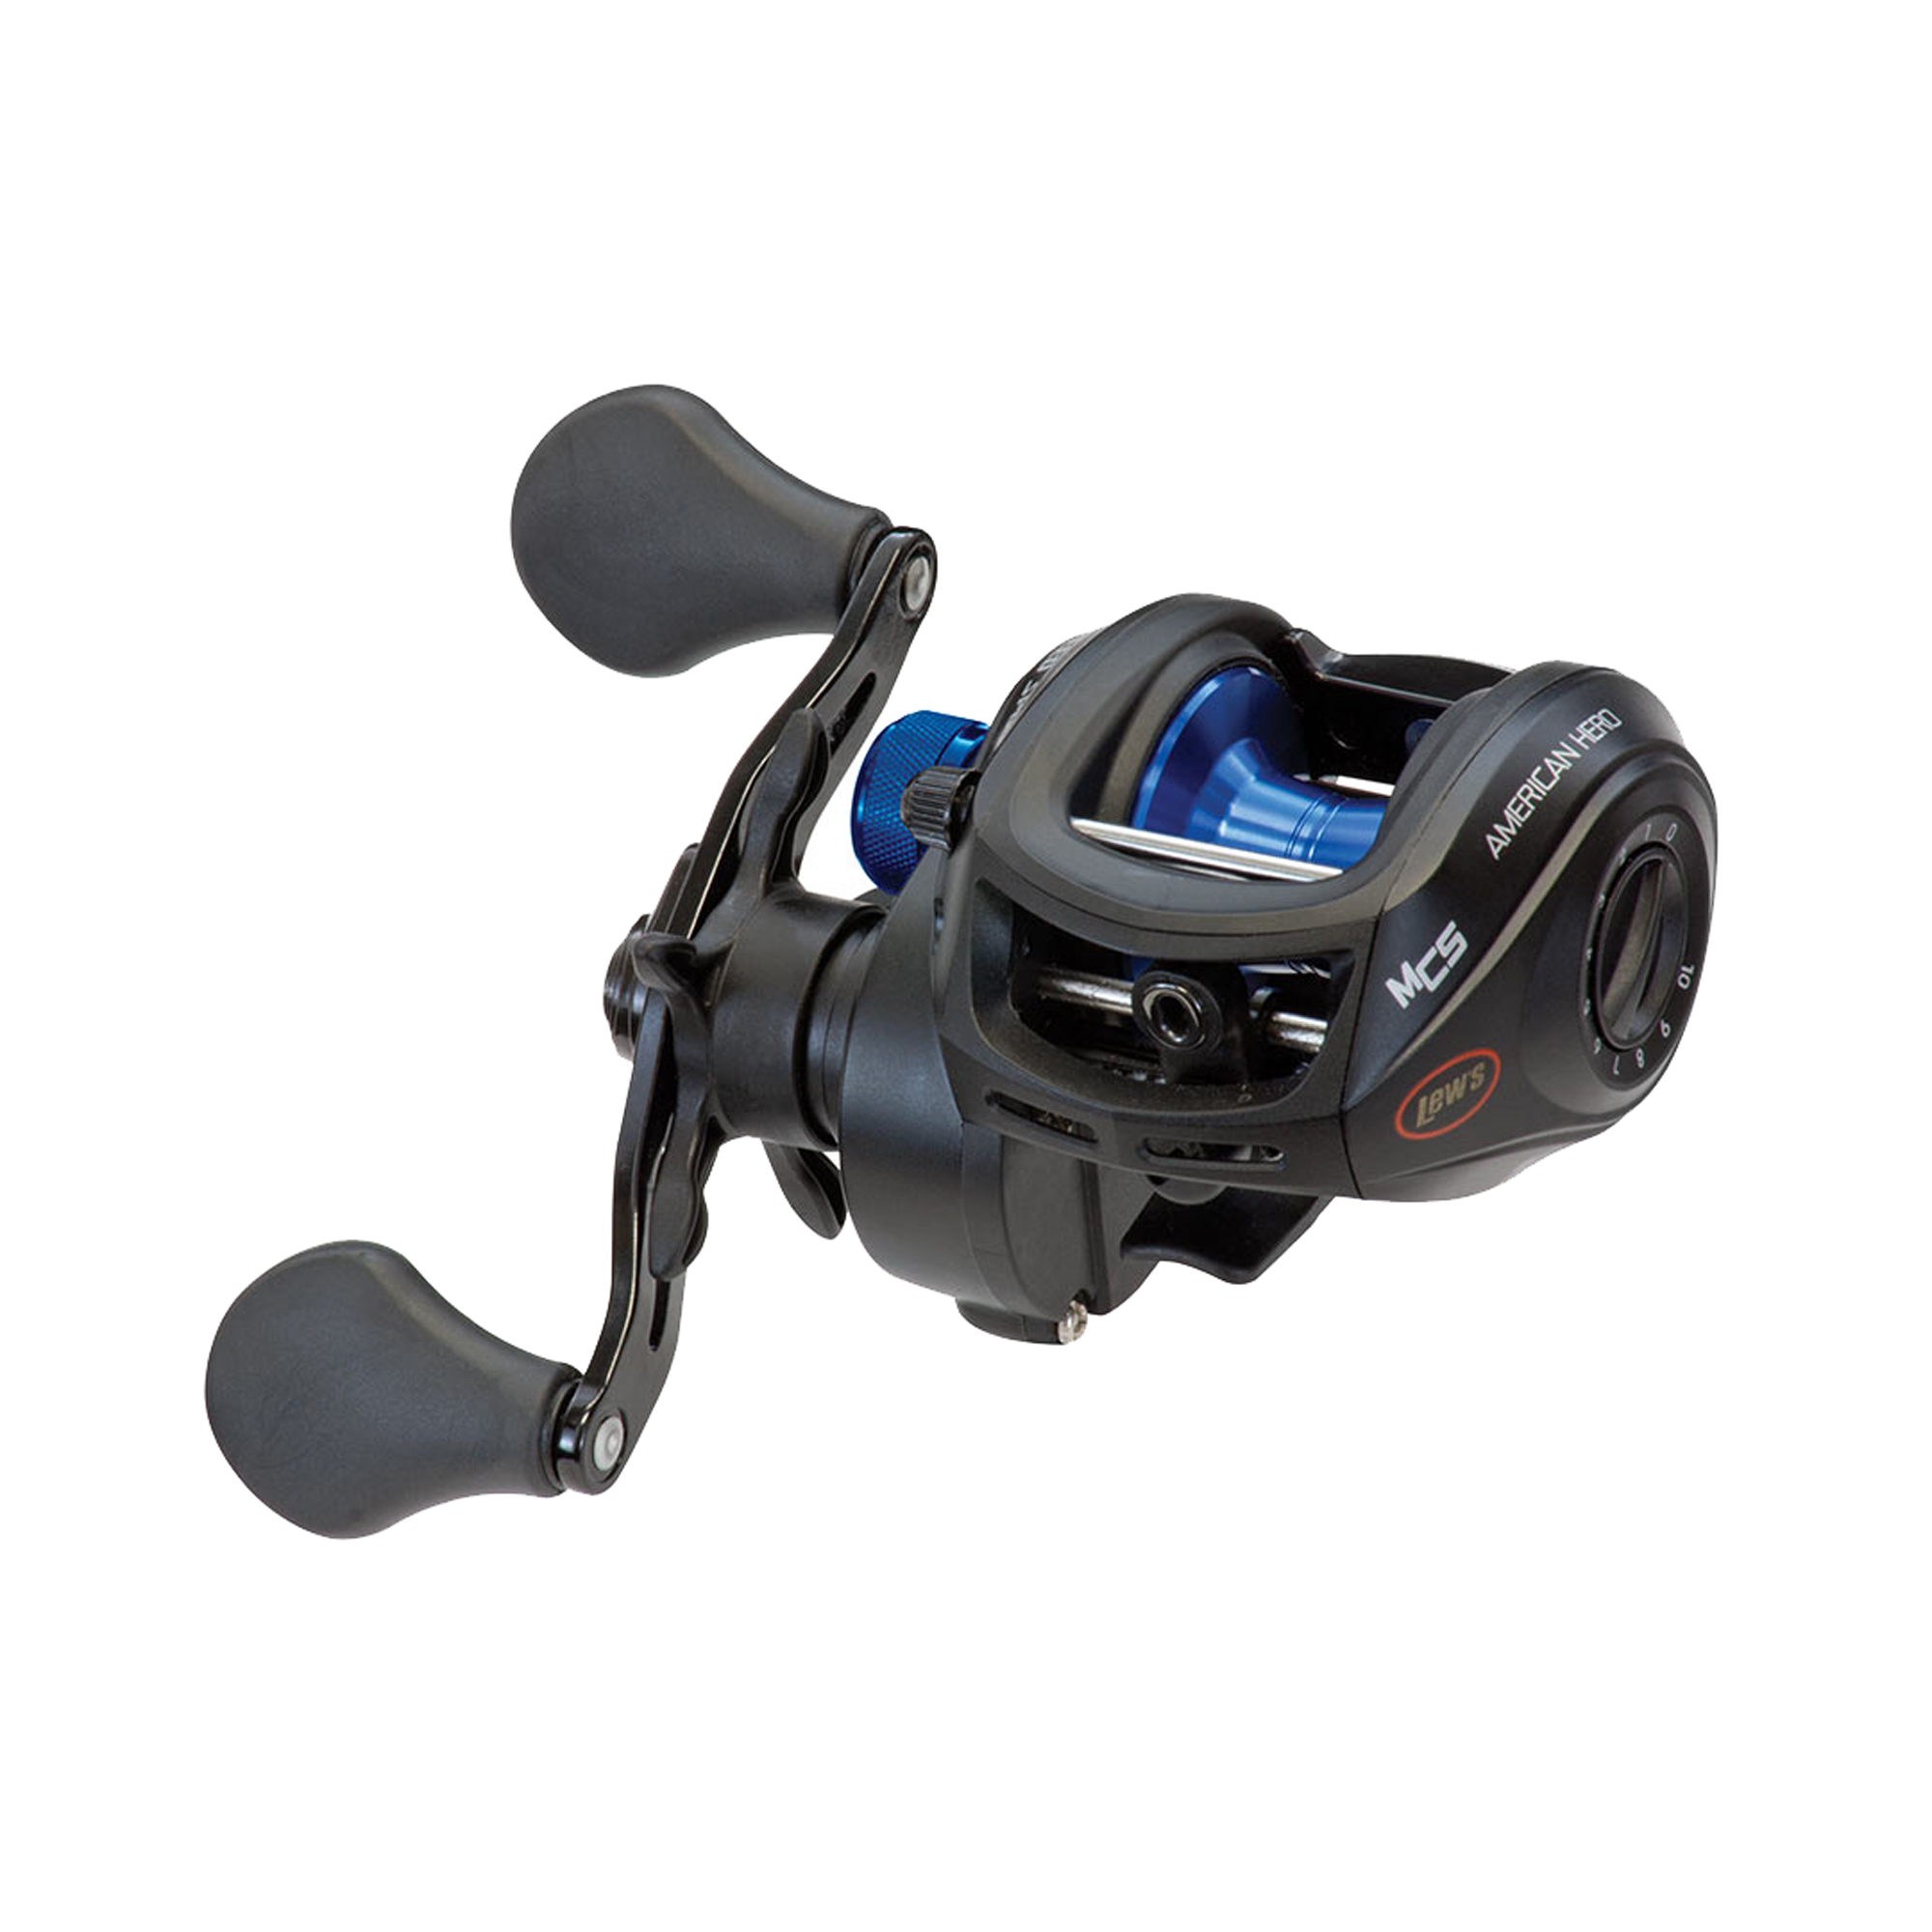 Lews Fishing AH1H, American Heroes Speed Spool Baitcast Reel Box